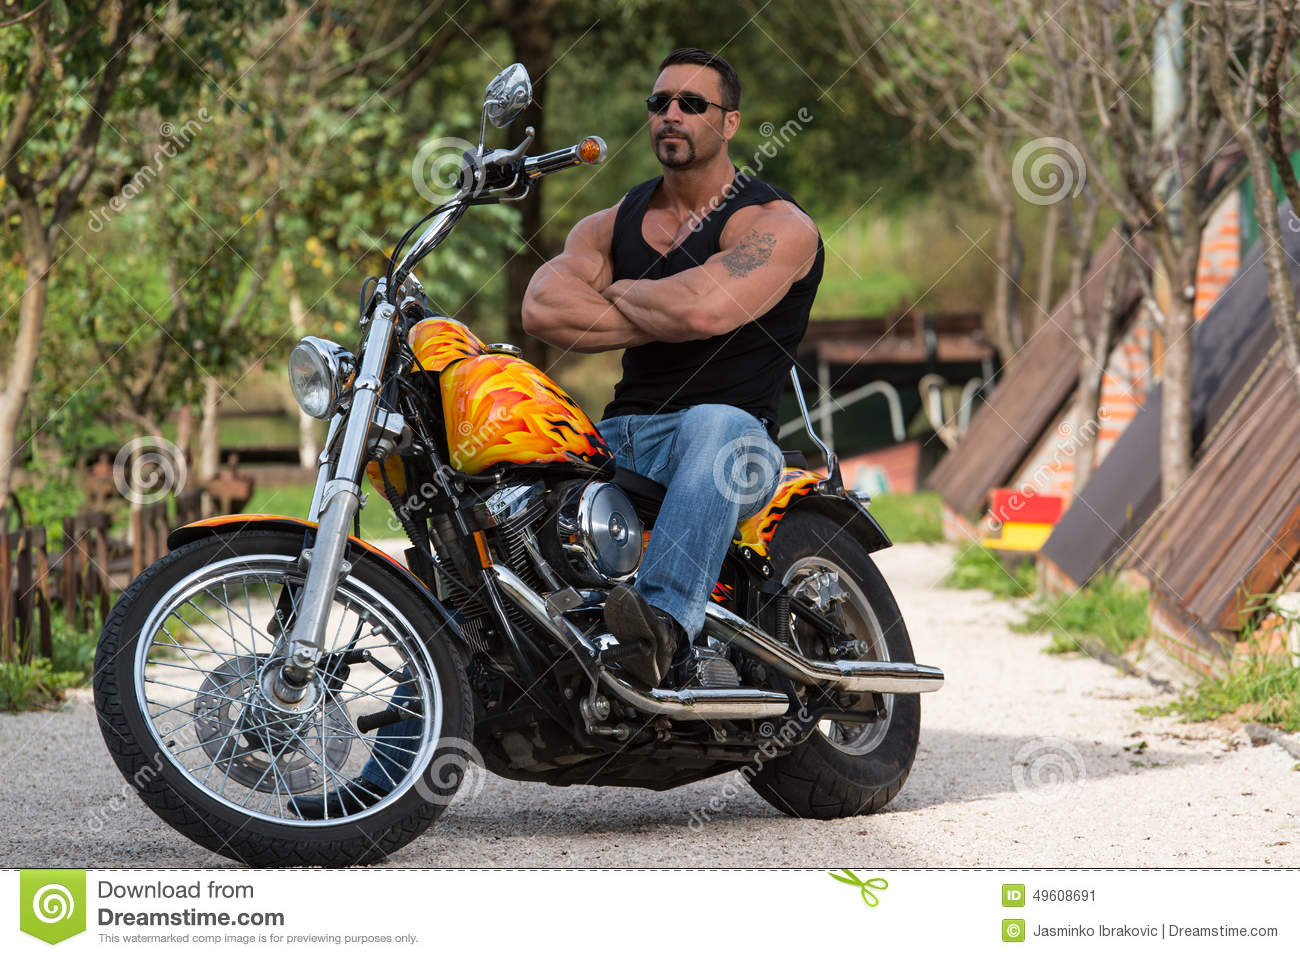 photos images muscular motorcycle